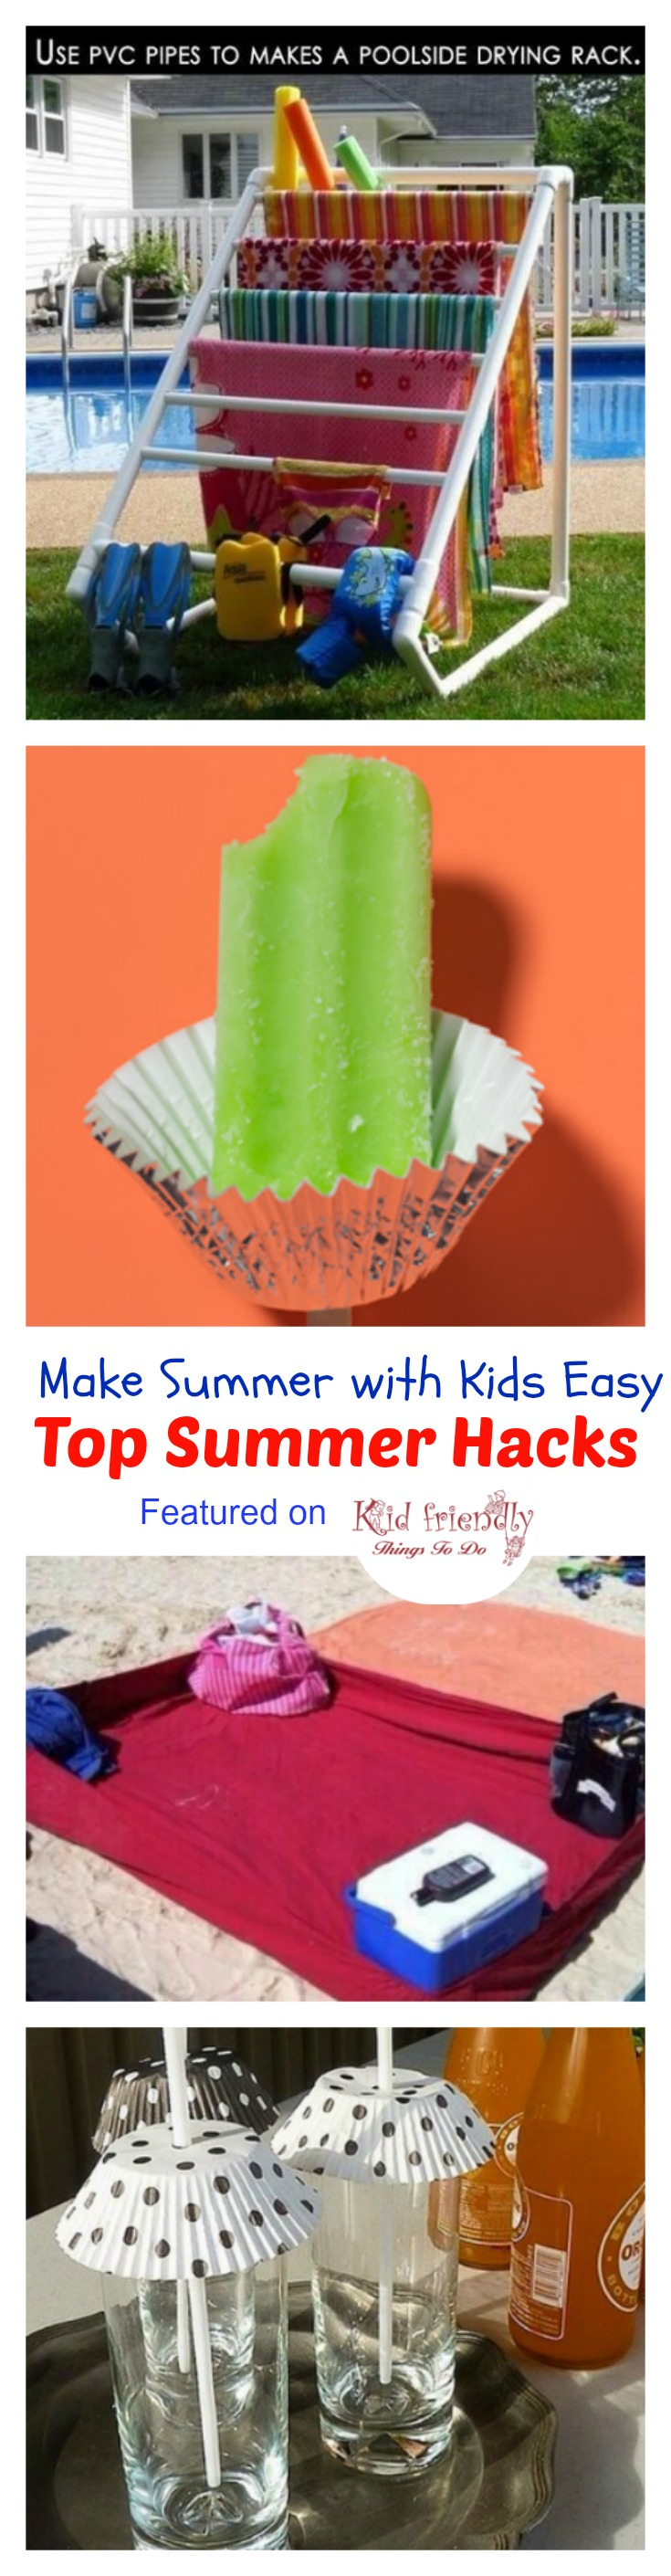 Top Summer Parenting Hacks - KidFriendlyThingsToDo.com